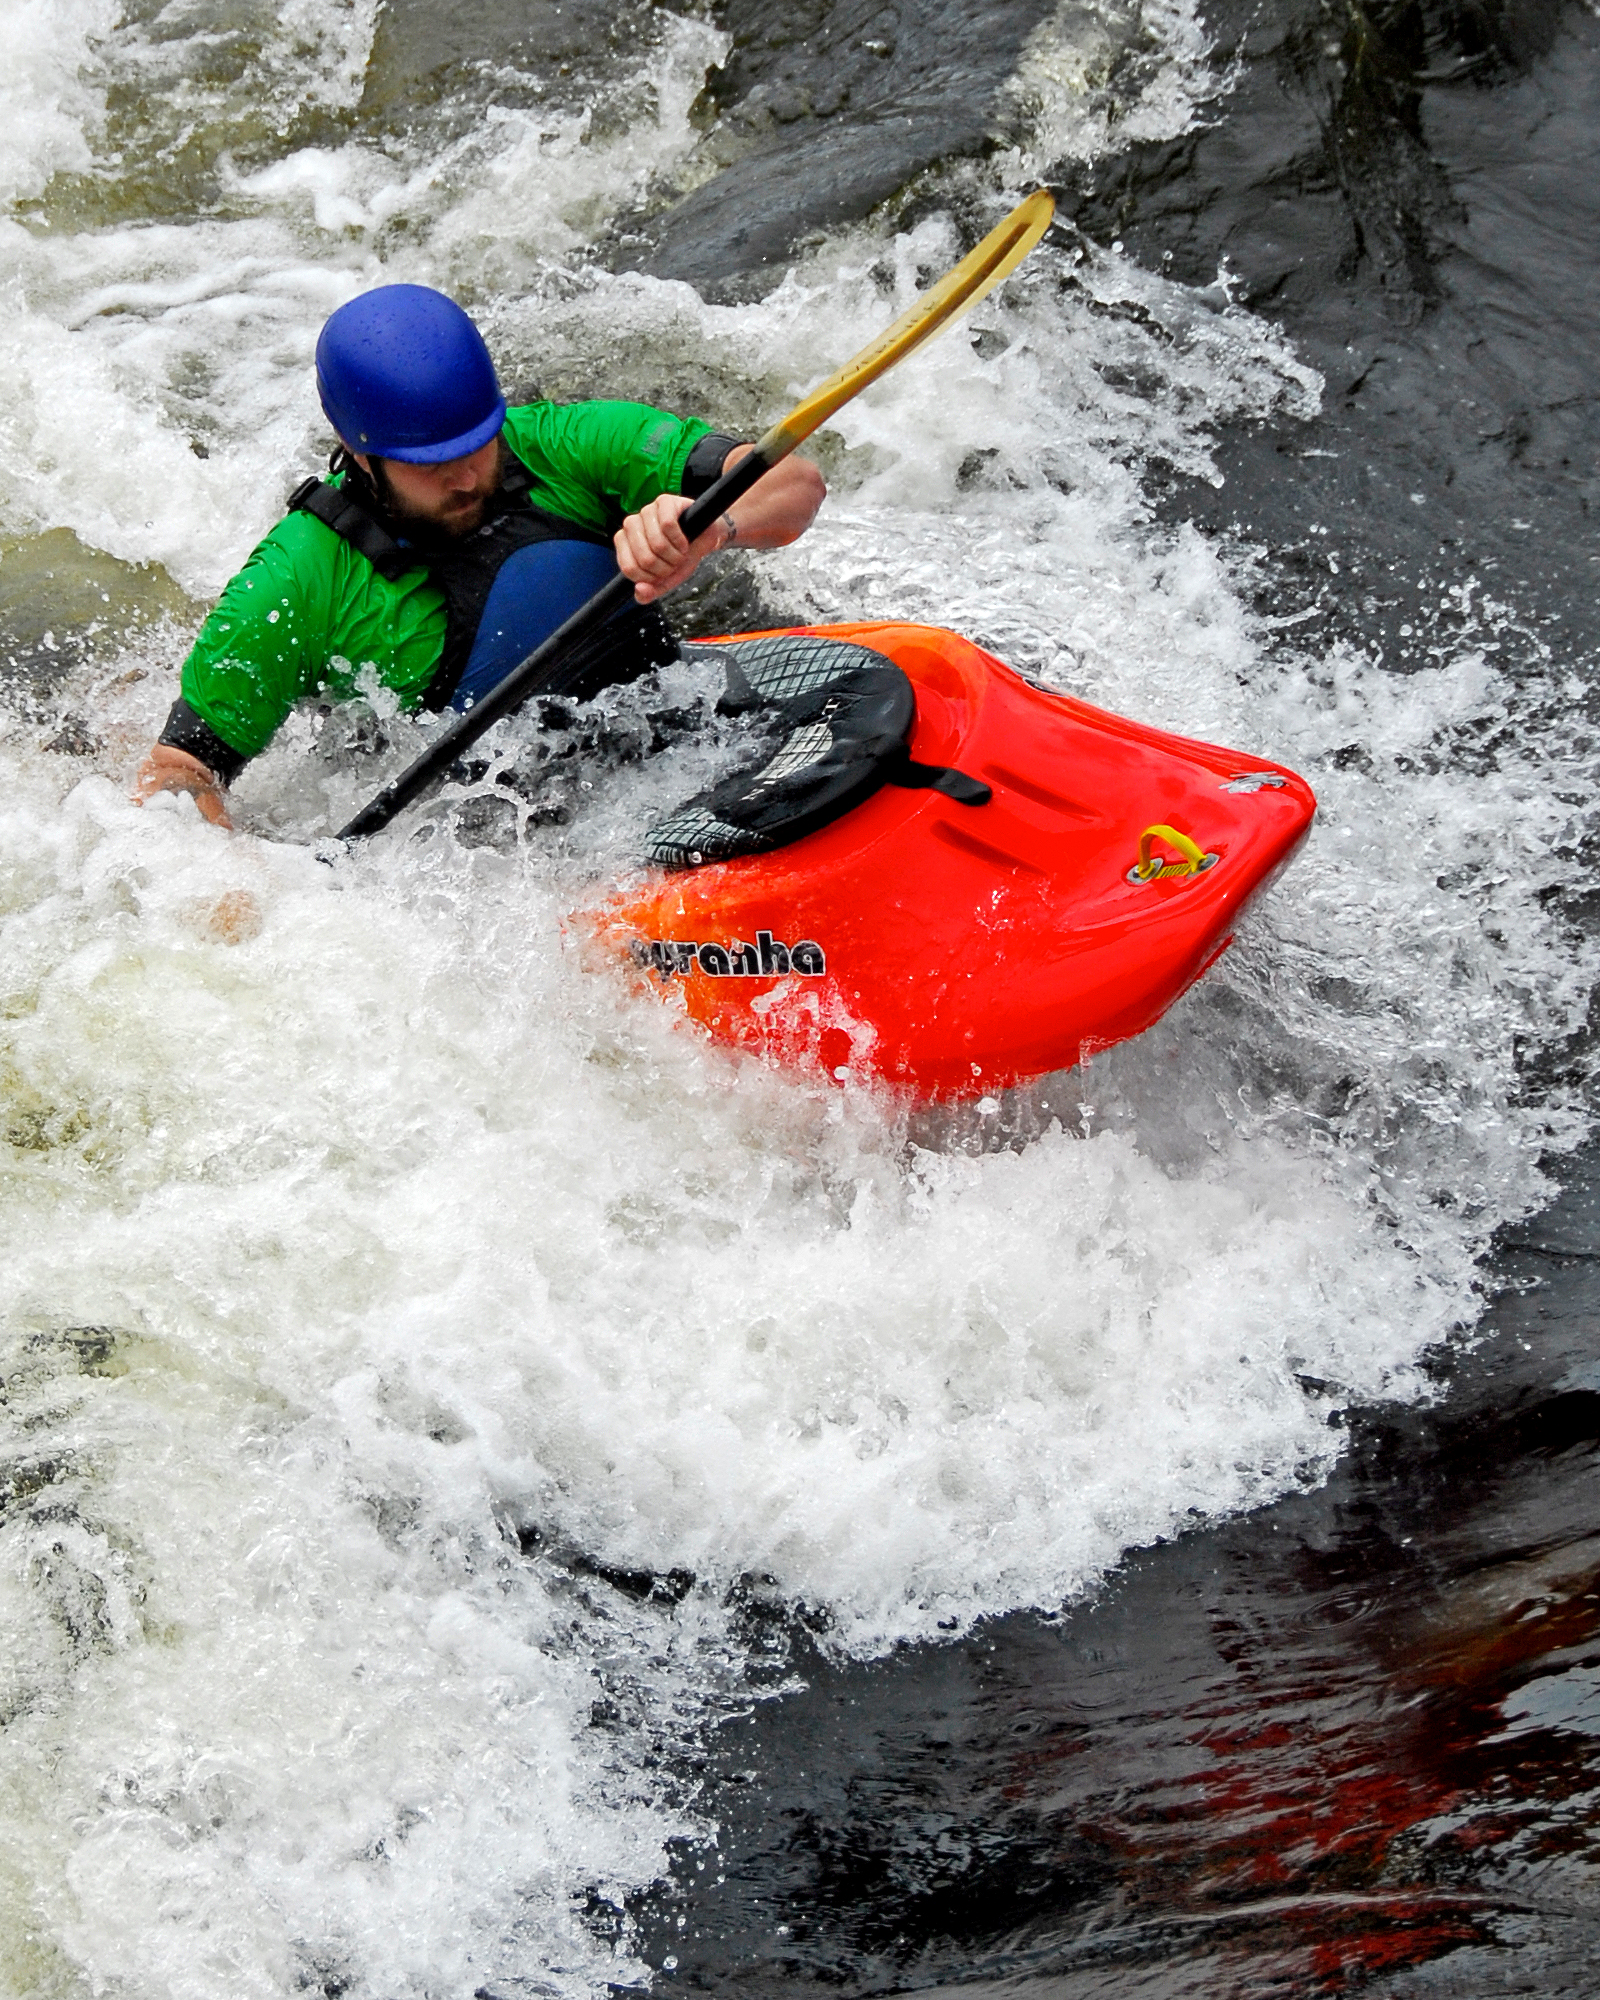 deccan-travels-corporation-adventure-kayaking-nashik